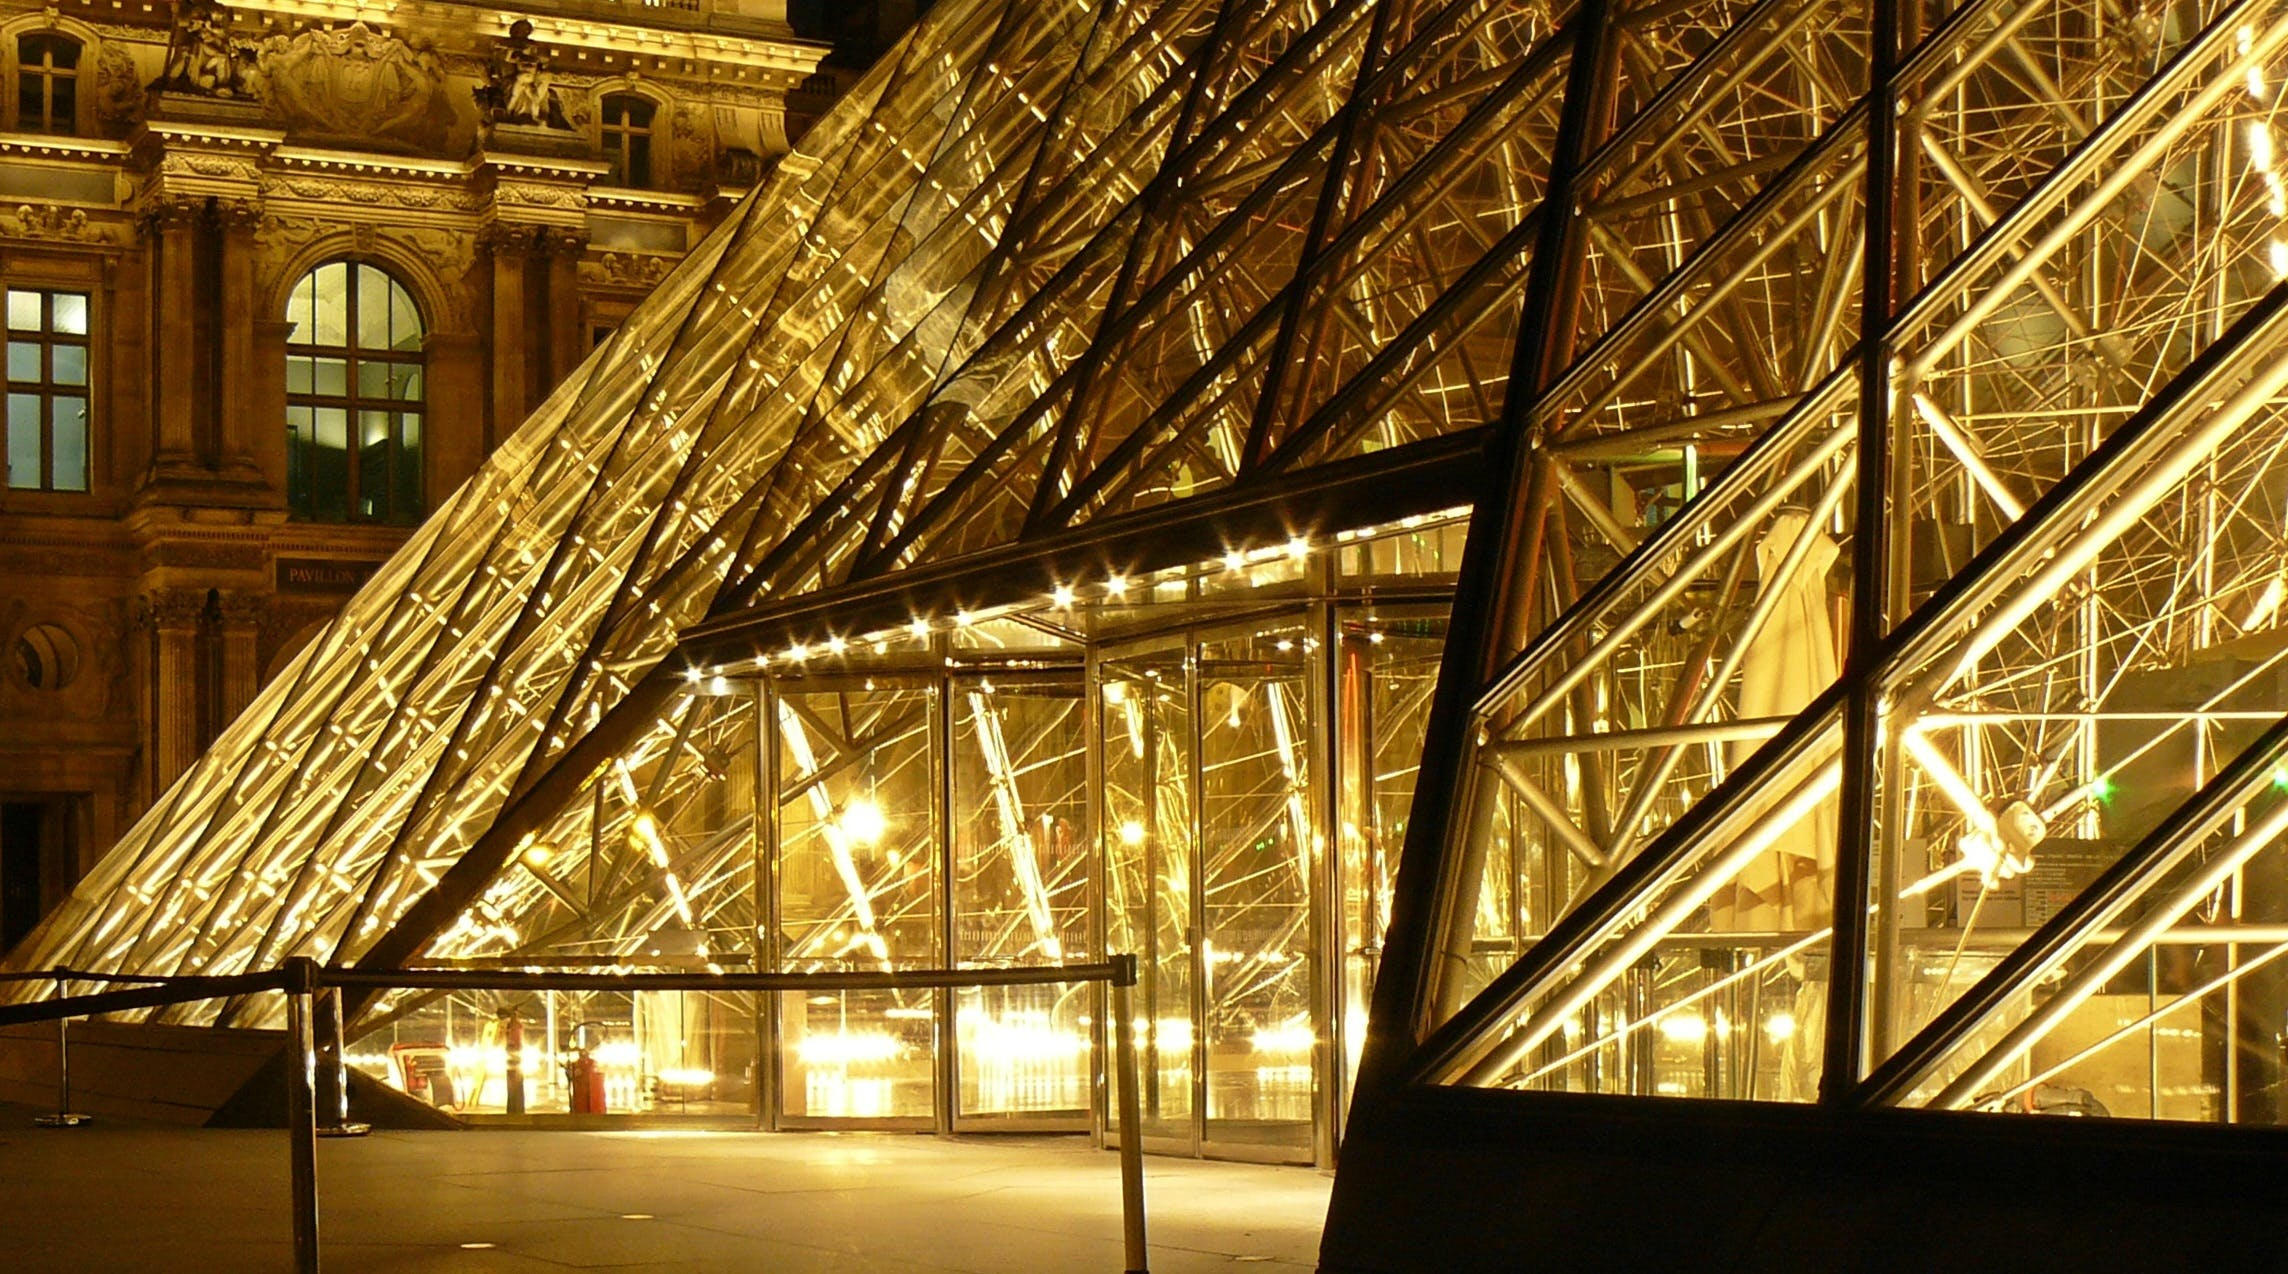 Metal Frame Glass Pyramid Outside a Museum With Yellow Lights during Nighttime